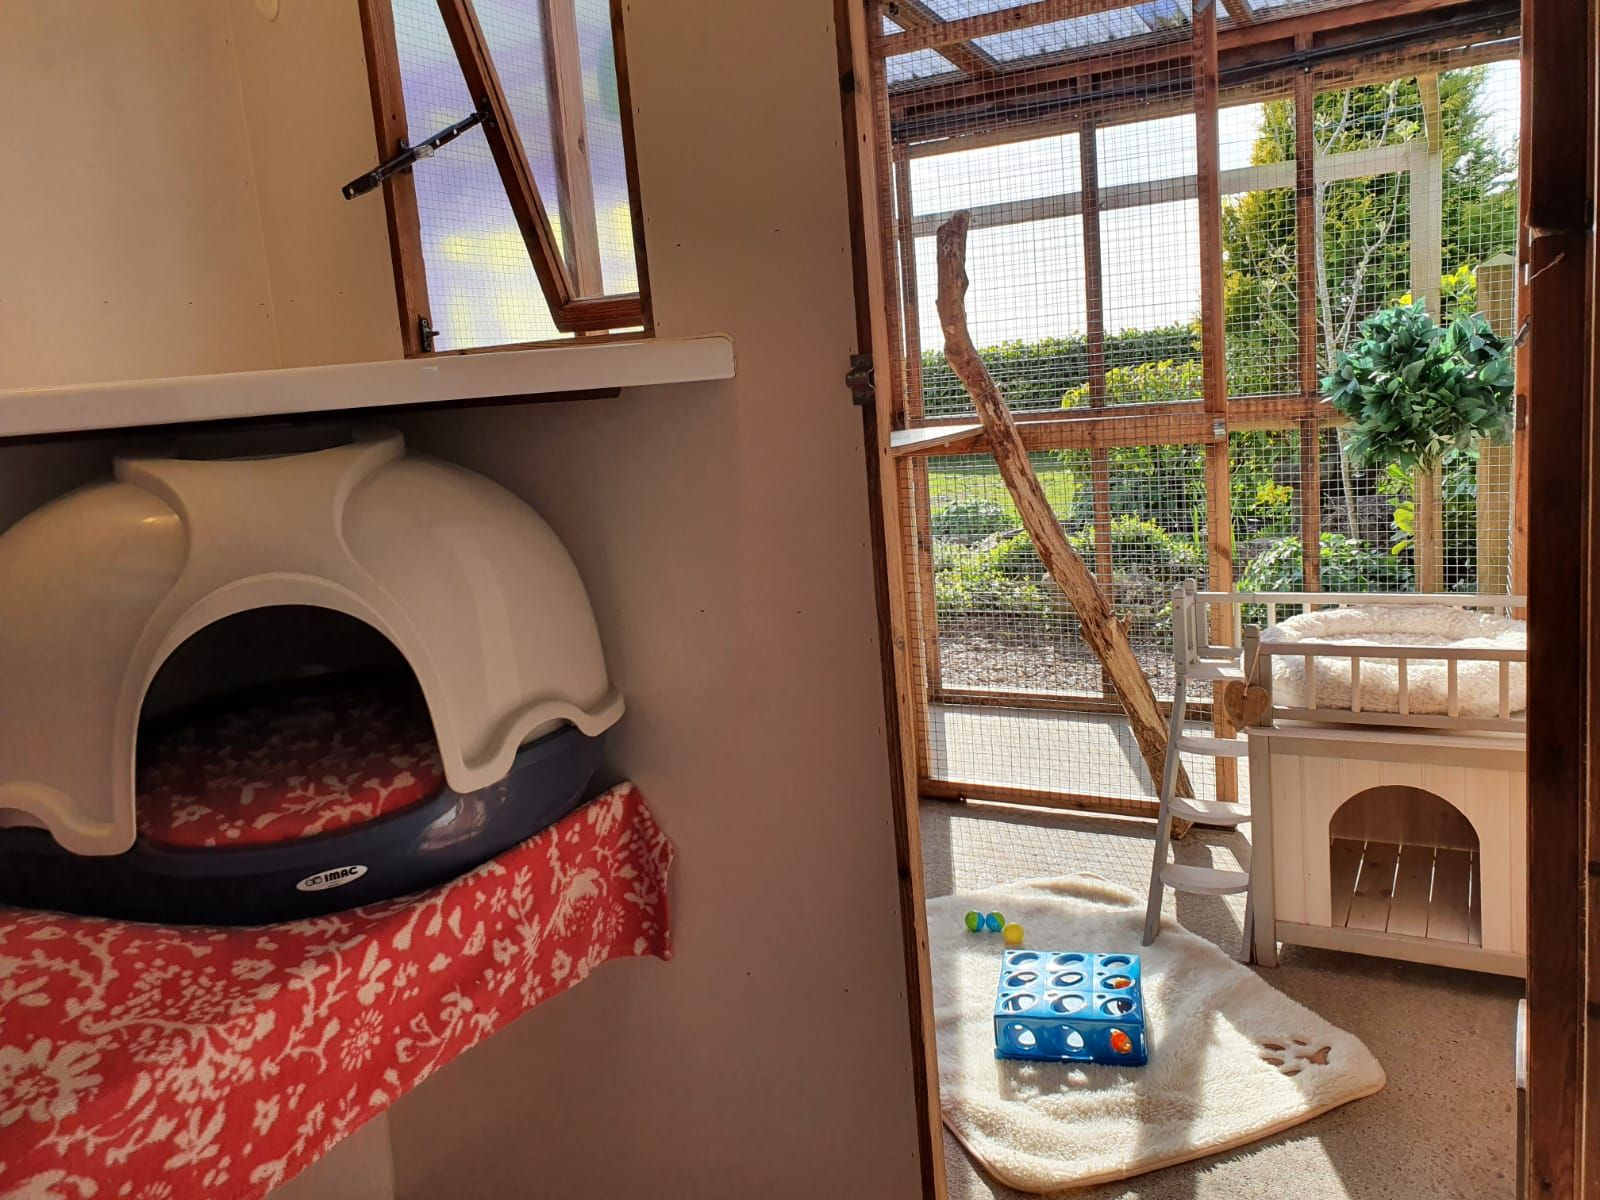 Cattery rooms all include toys, scratching posts and a lounging area with outside view